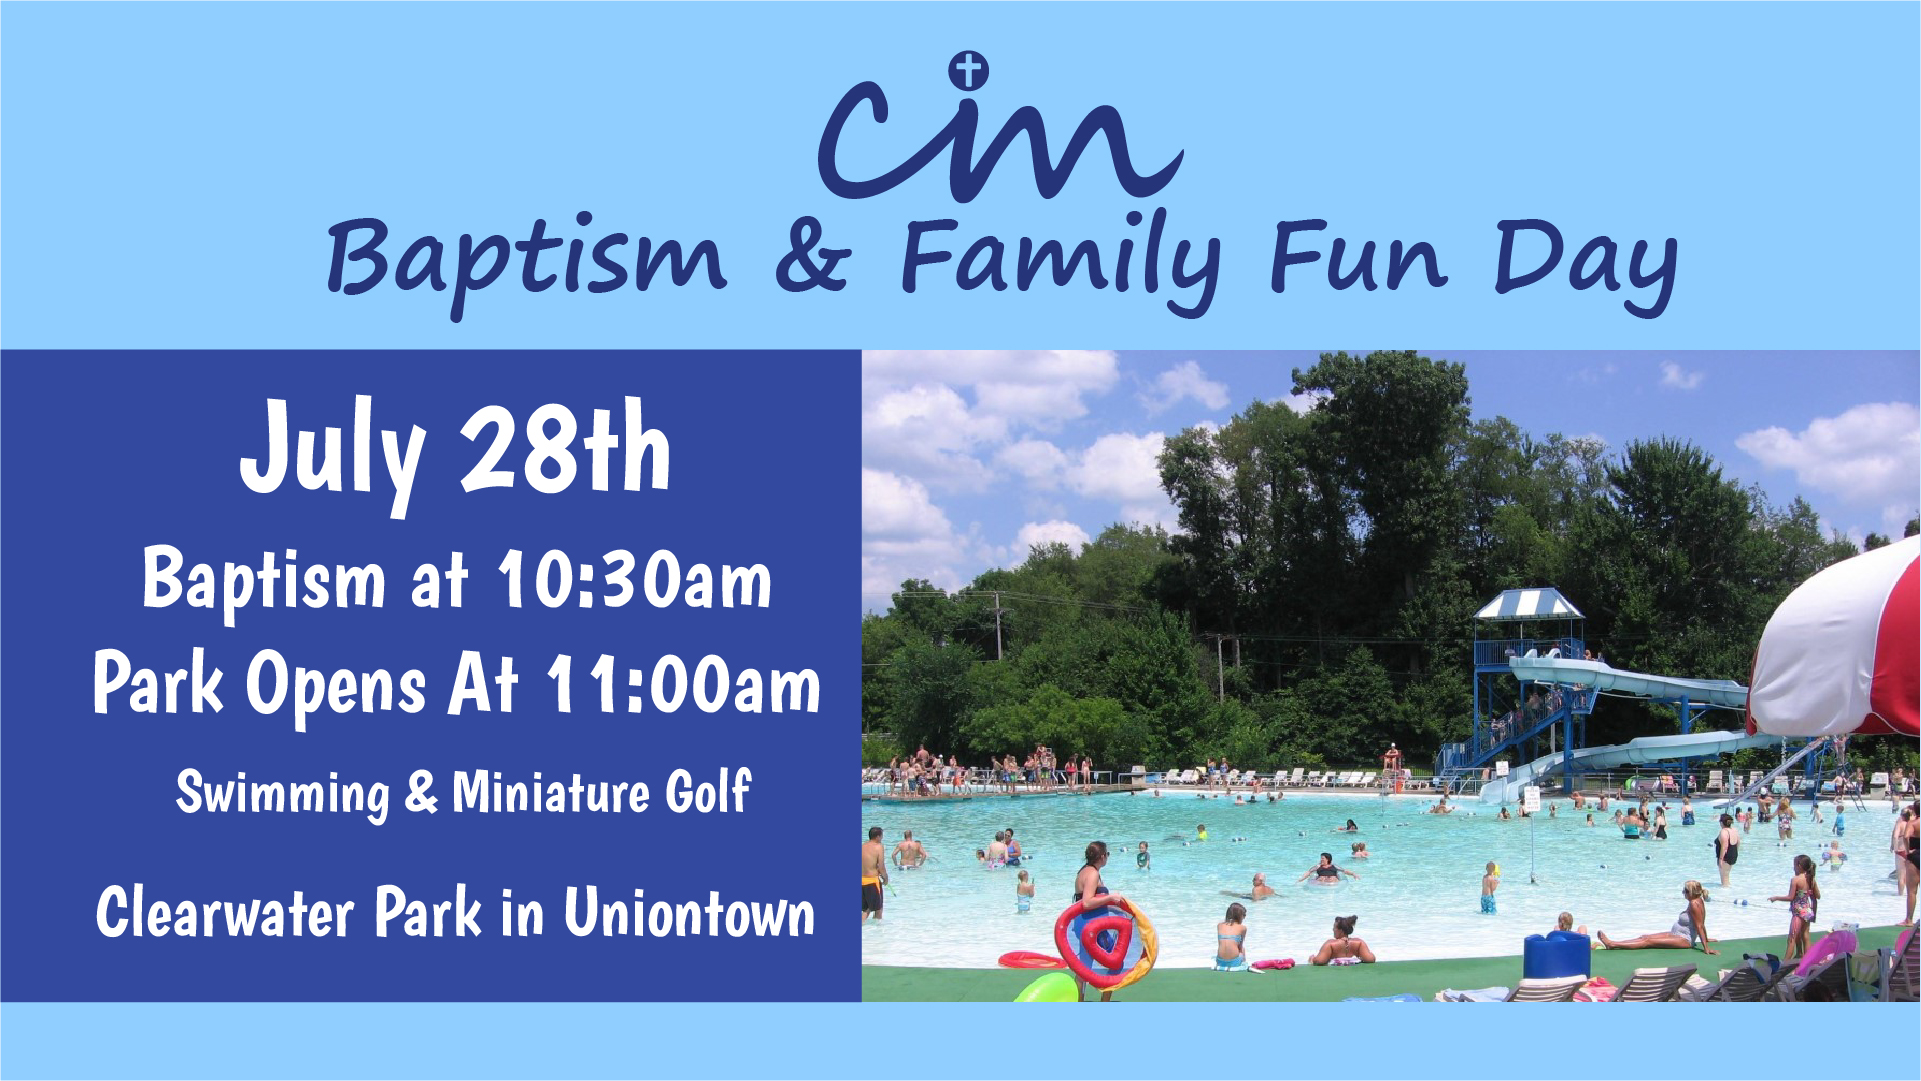 To be admitted to the park for swimming and mini-golf, please pick up a postcard pass from the church office or your Adult Sunday school teacher. A postcard will be needed for each person's entry into the park. Be sure to write your name, address and phone number on the back of the post card before turning it in for entry to the park. This will help our office update any address or phone number changes for attendees.